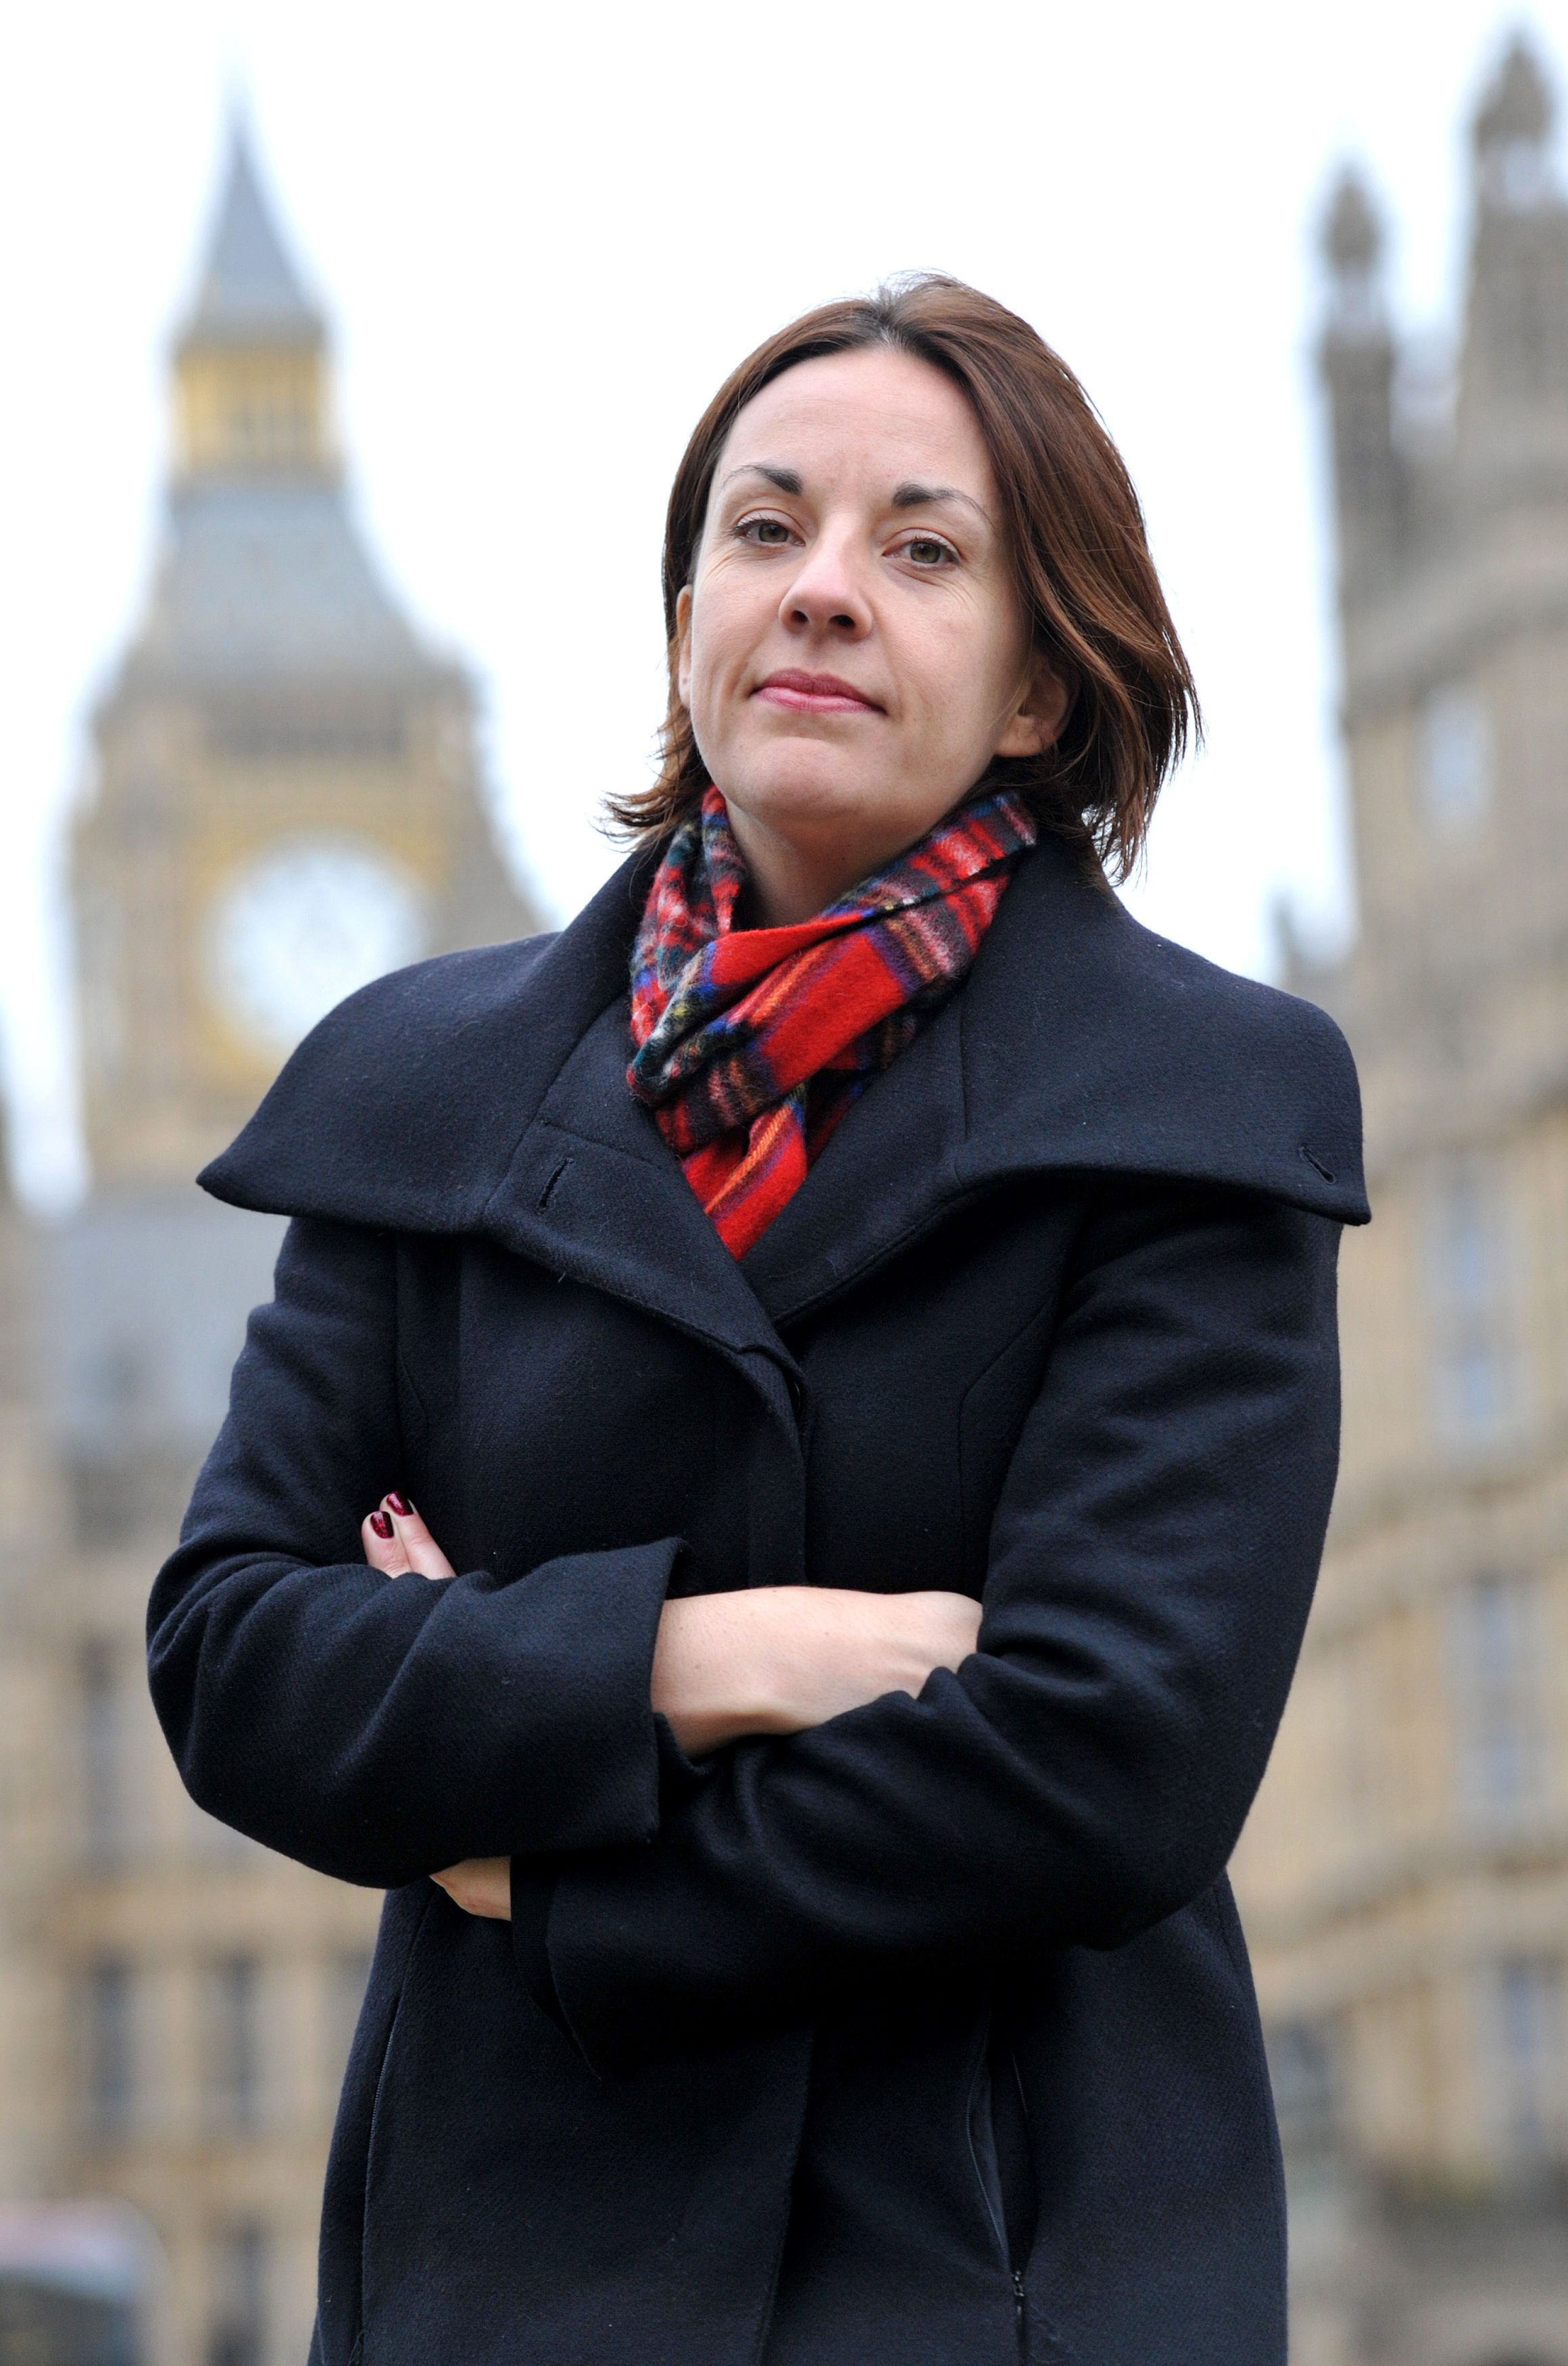 Kezia has taken leave from the Scottish Labour